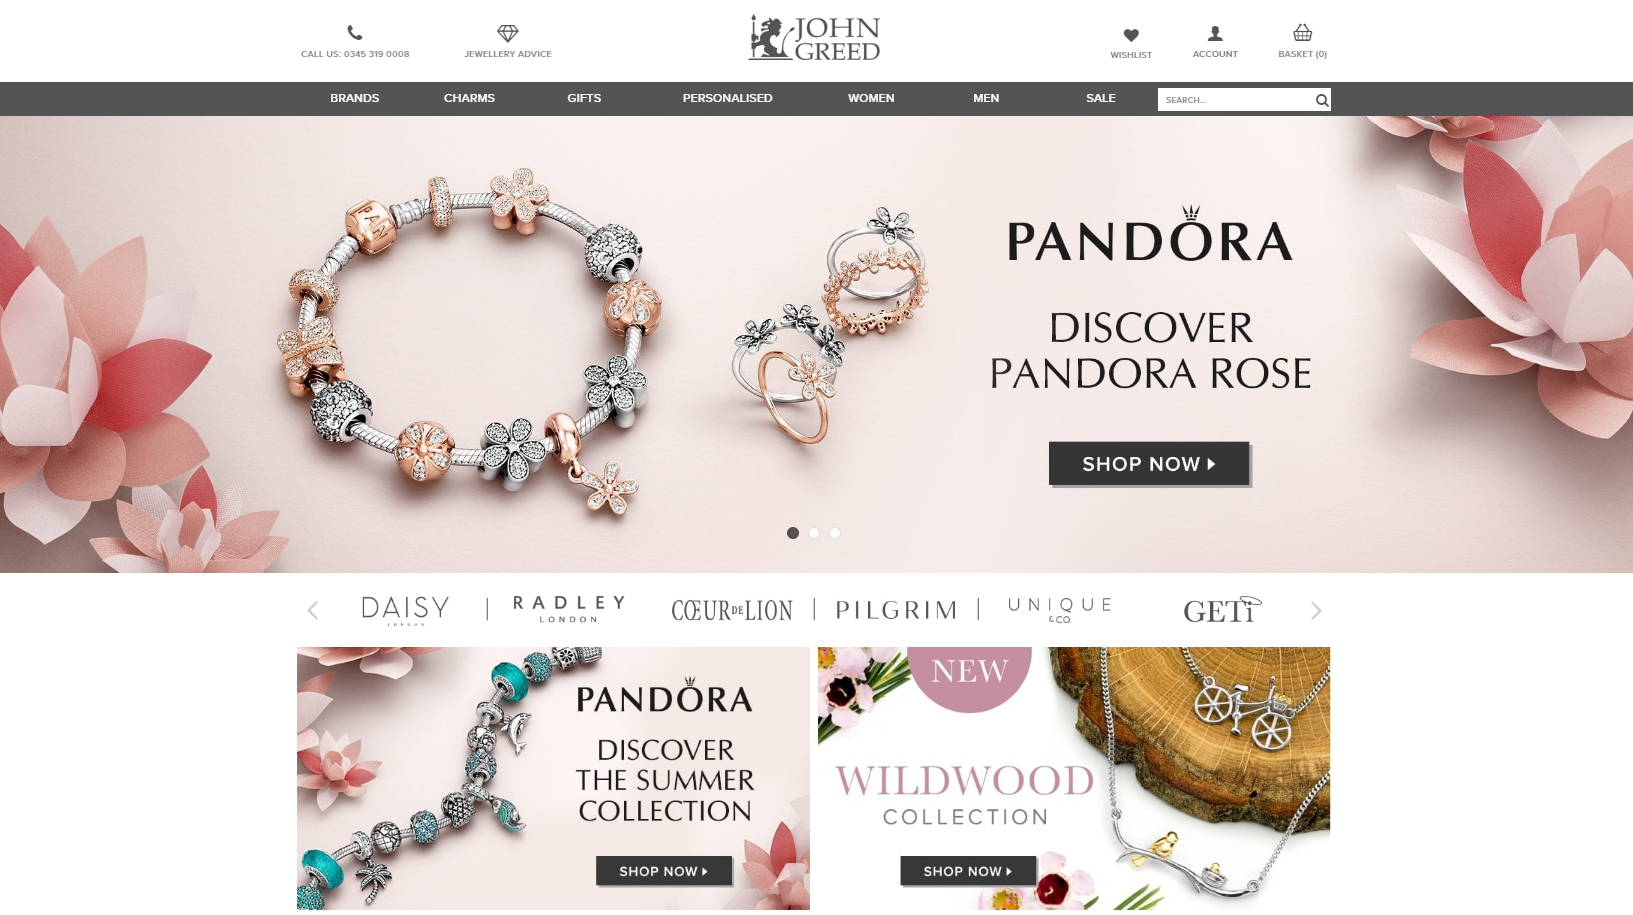 John Greed Pandora Discount Code